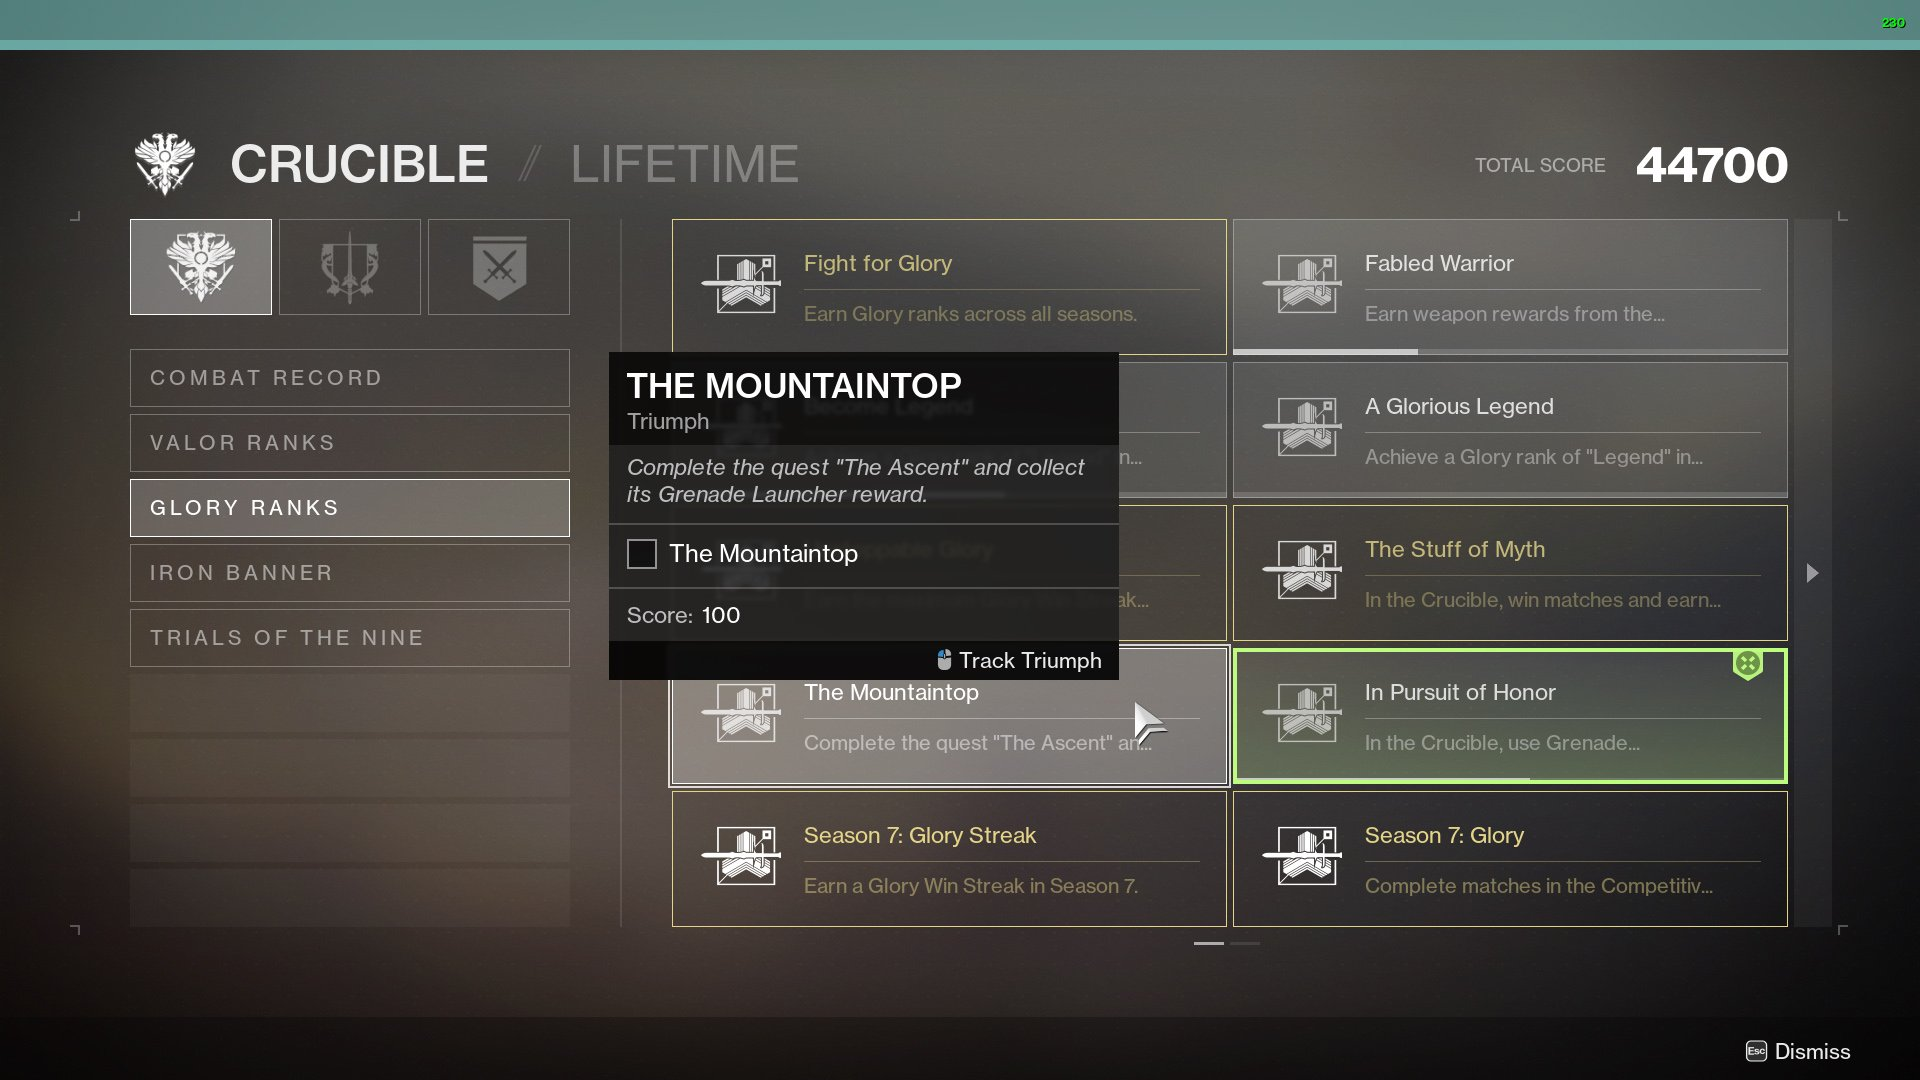 Get The Mountaintop in Destiny 2